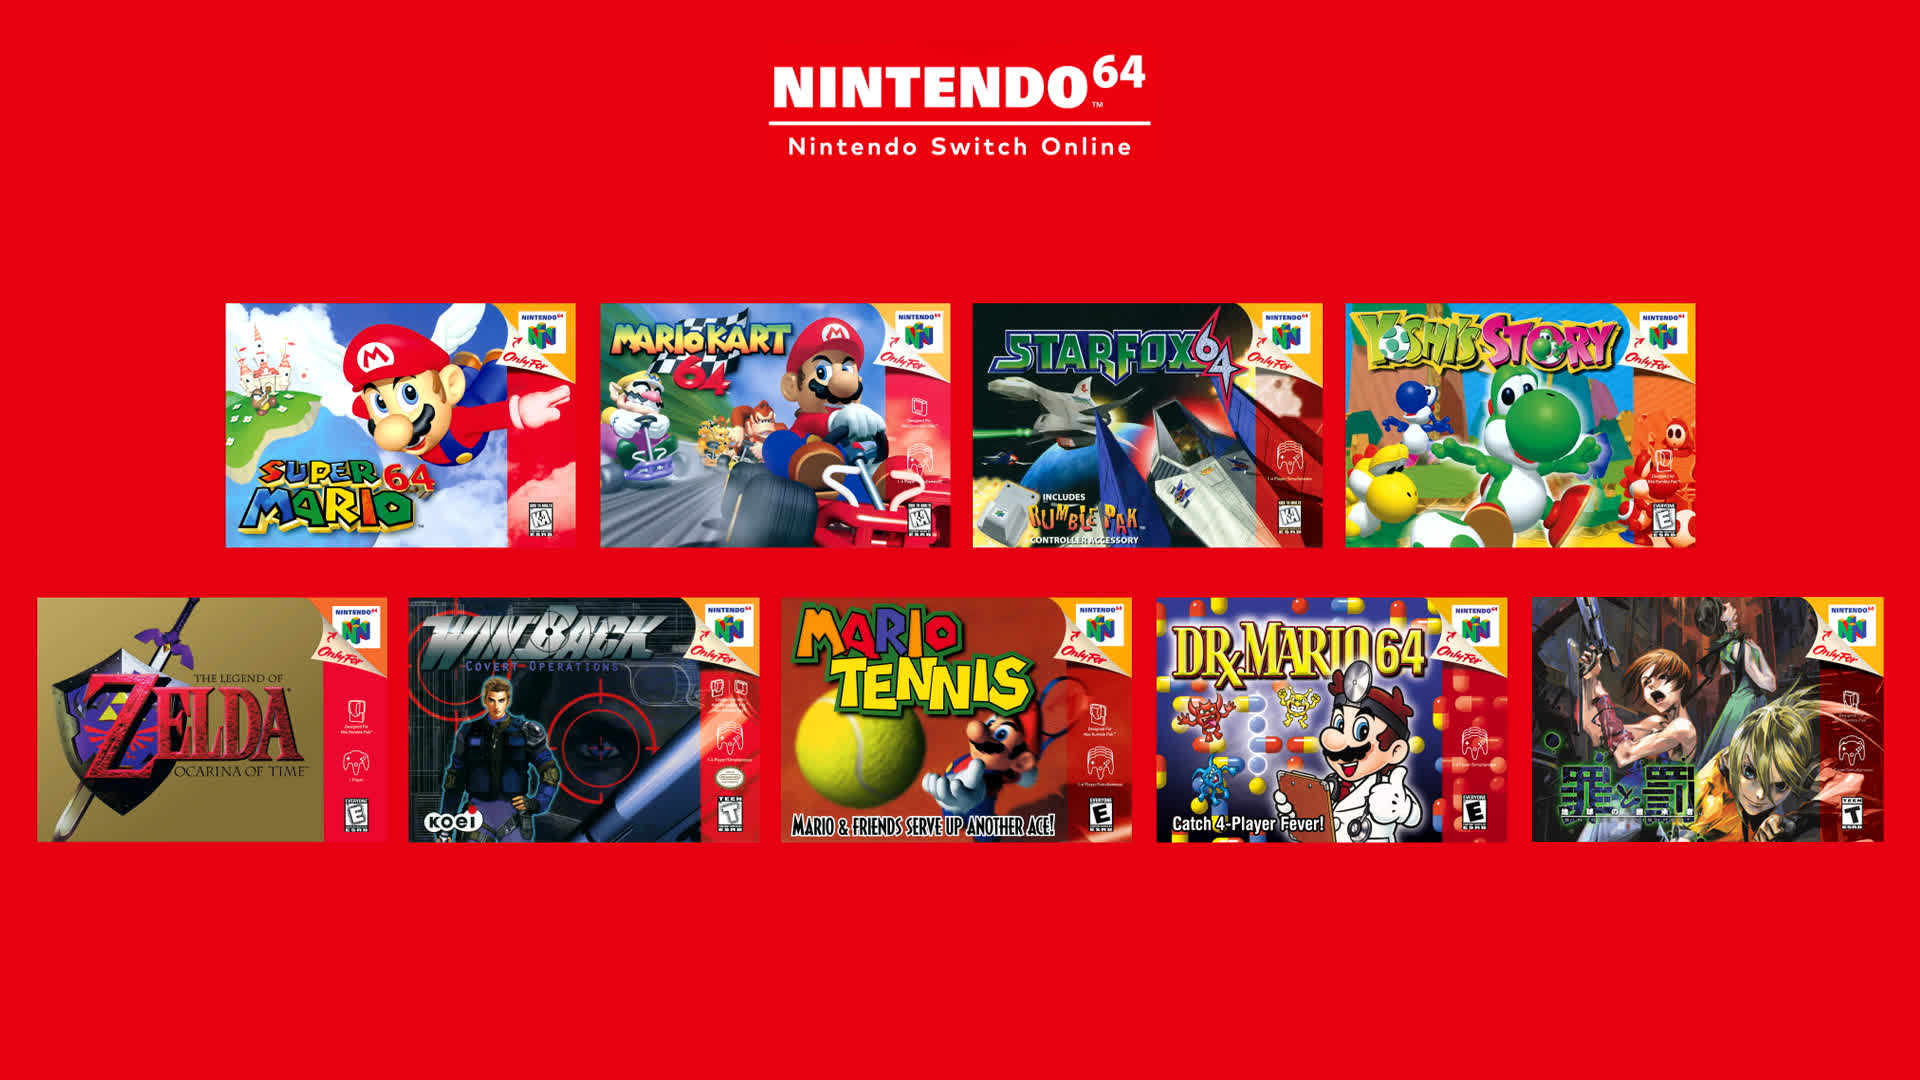 Nintendo confirms Switch Online N64 games will be 60Hz English versions